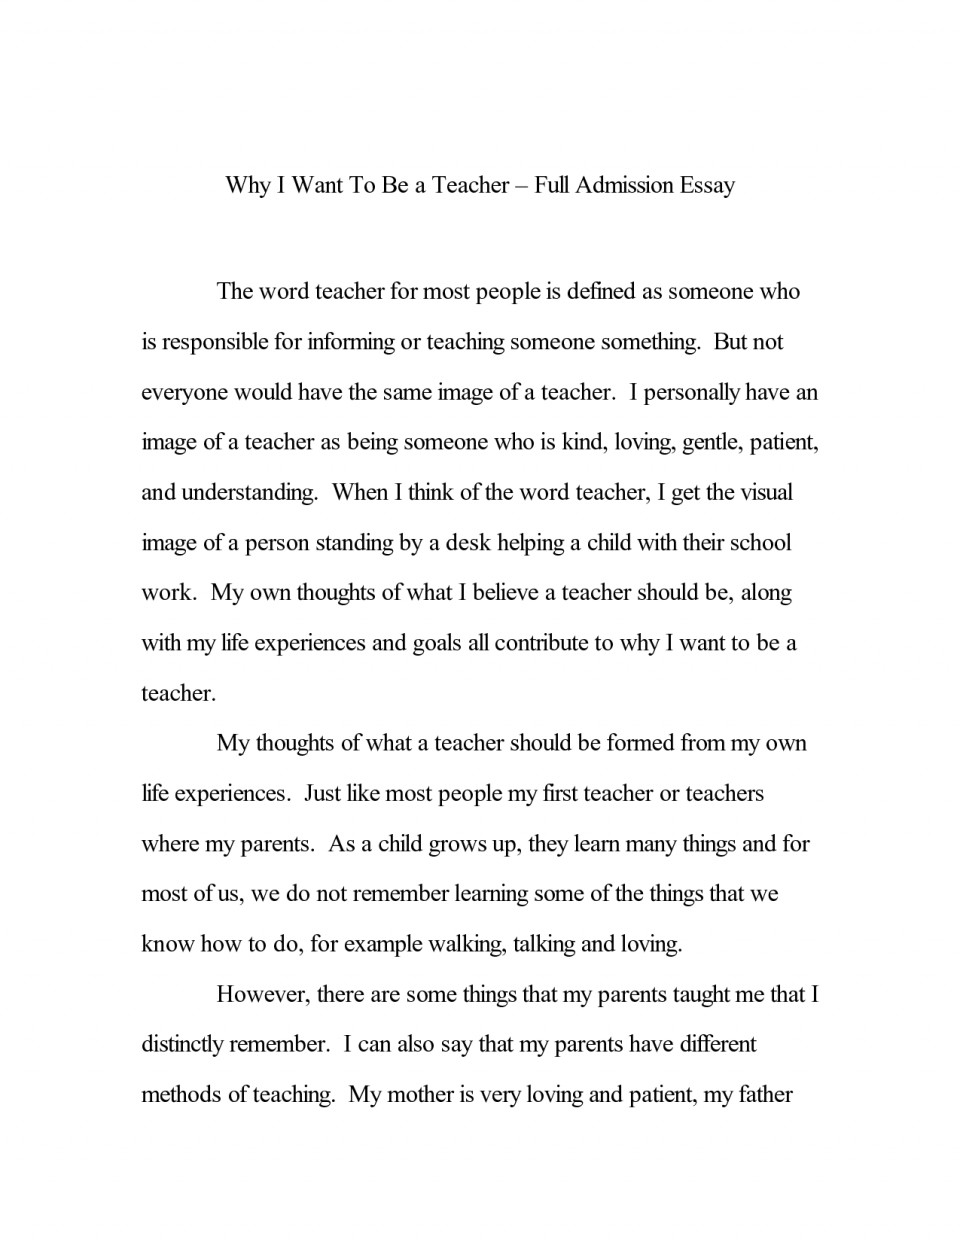 004 Writing College Application Essay Rare A How To Write Outline Tips For Entrance 960